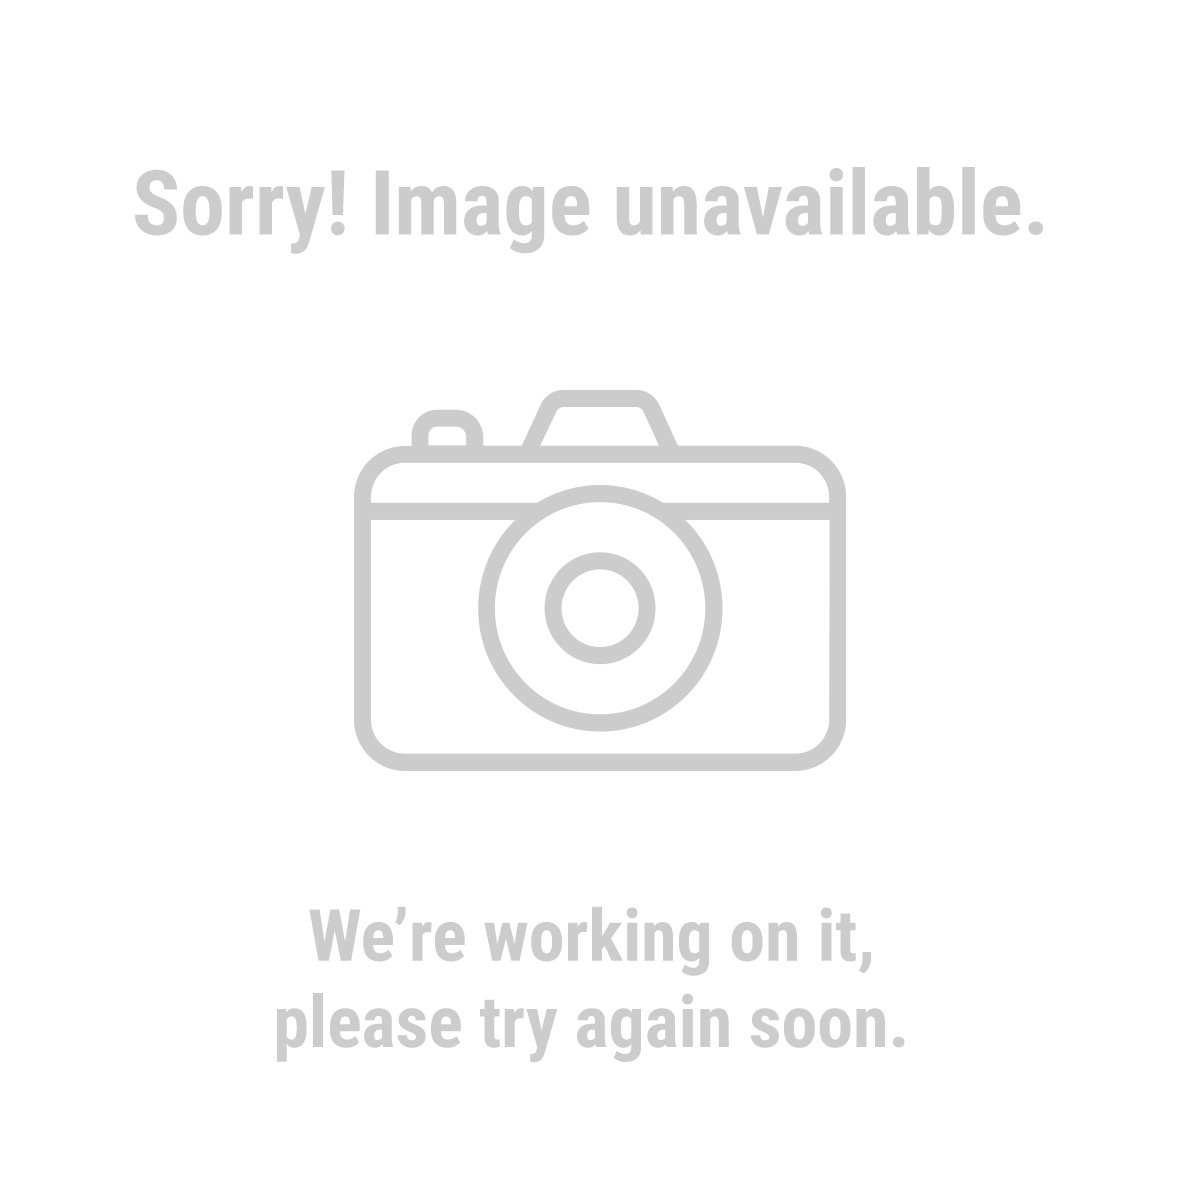 Cen-Tech 98568 CAN OBDII Code Reader with Multilingual Menu